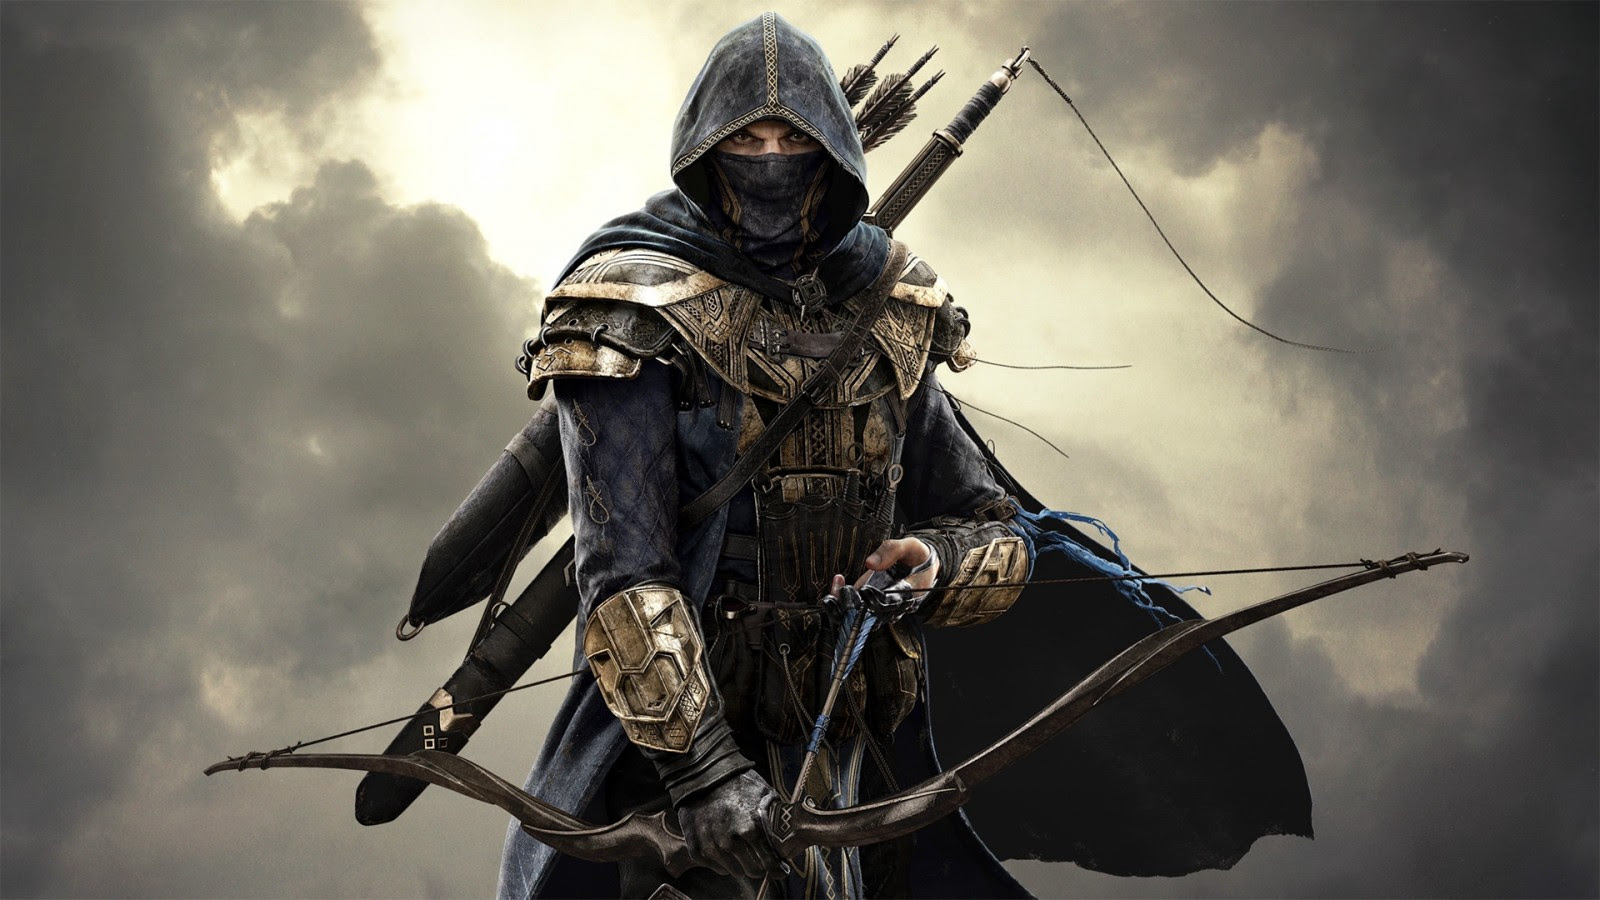 The Elder Scrolls Online Hd Wallpaper 1600x900 Hd Wallpaper